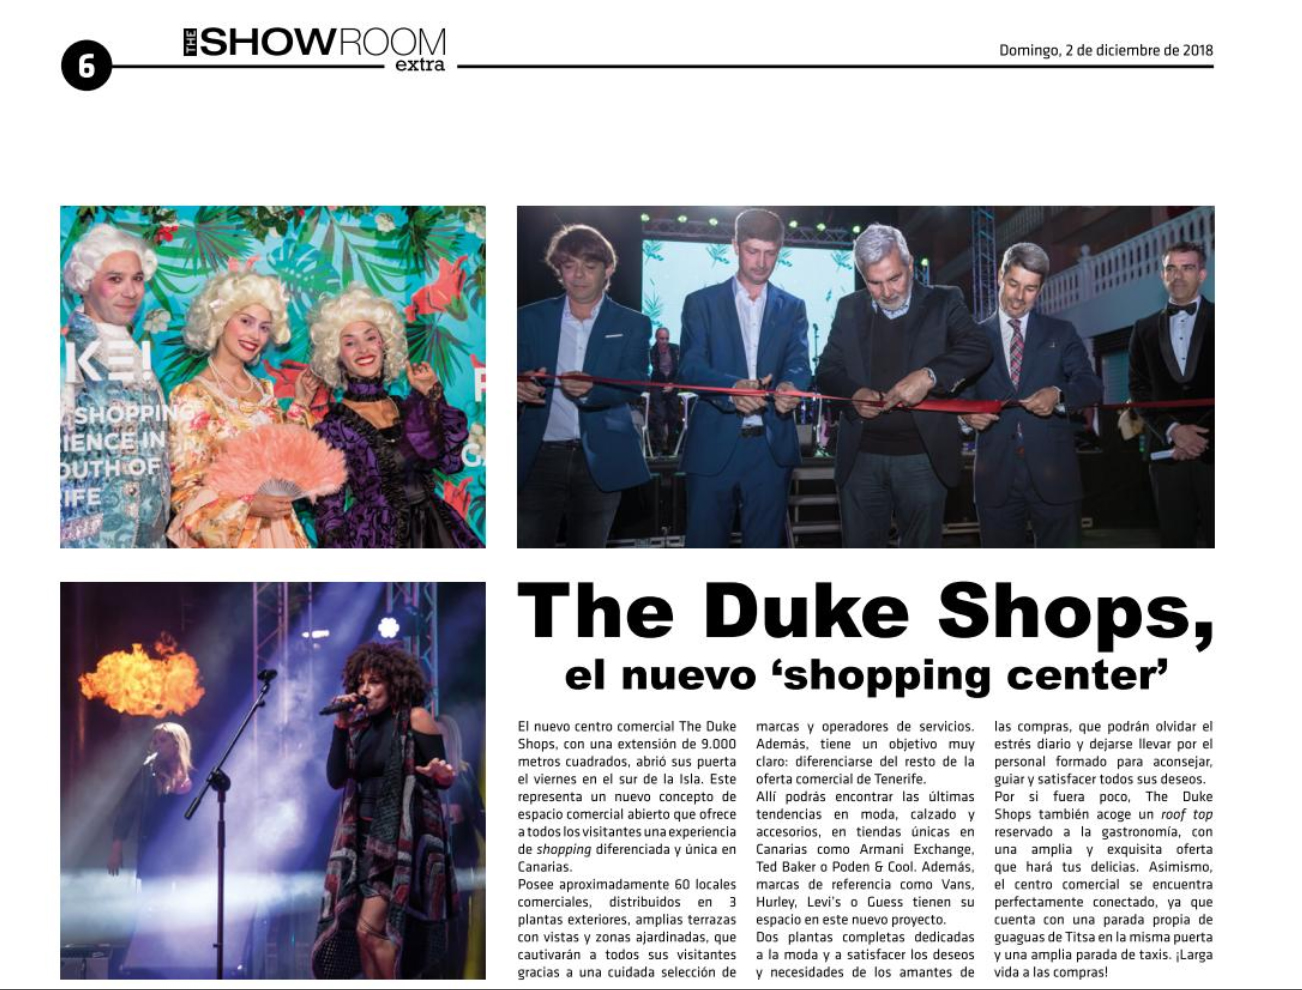 inauguracion_the_dukes_shops_the_show_room